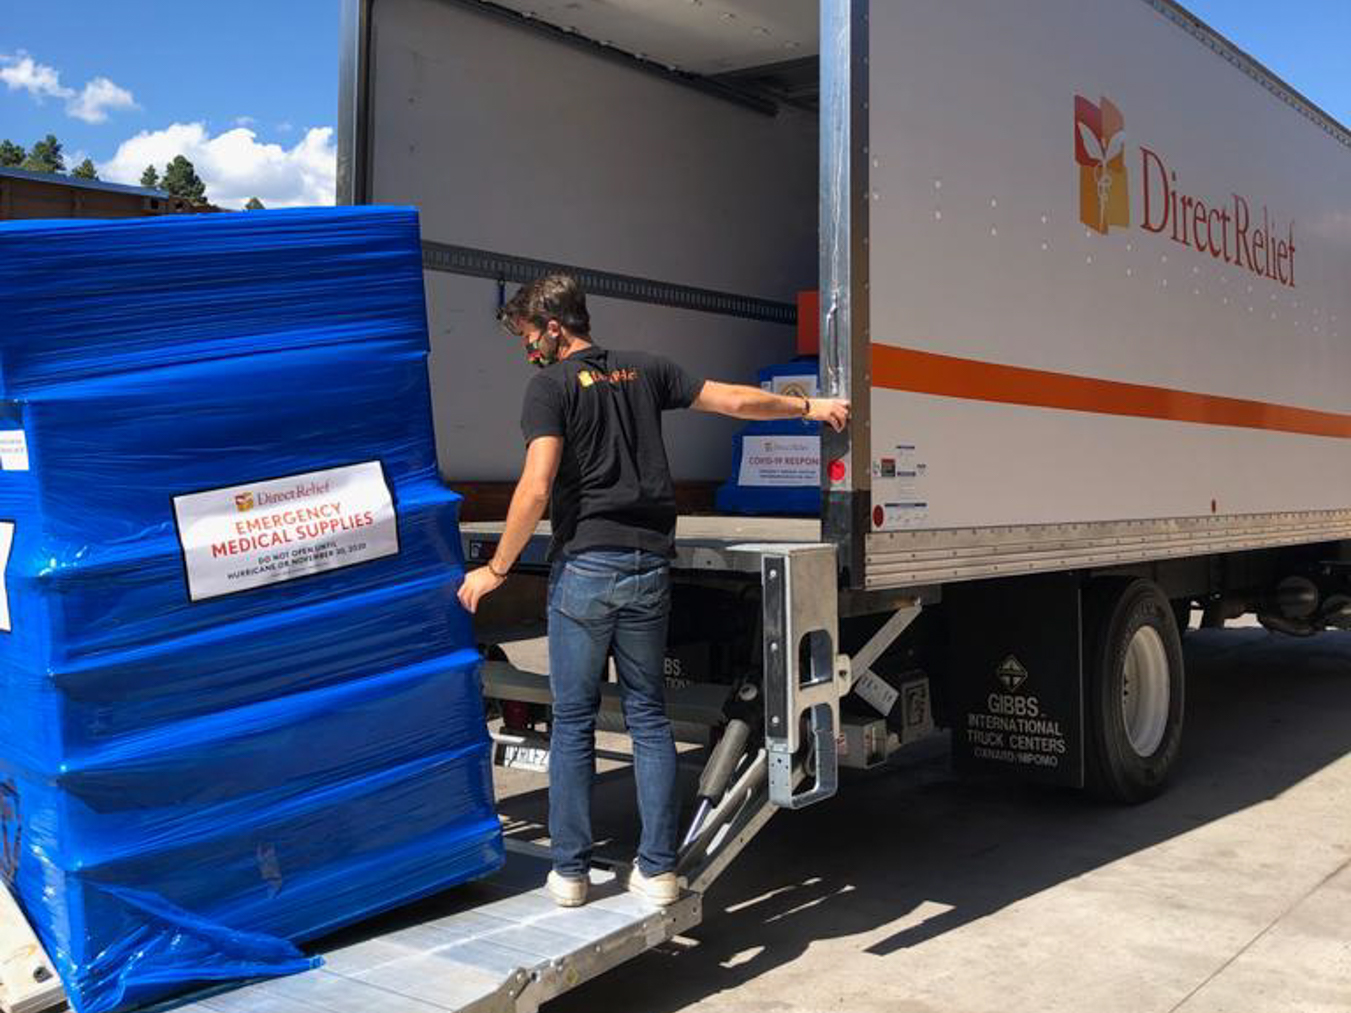 Direct Relief emergency response team member Chris Alleway unloading supplies in Navajo Nation. (Photo courtesy of Dr. Michelle Tom)